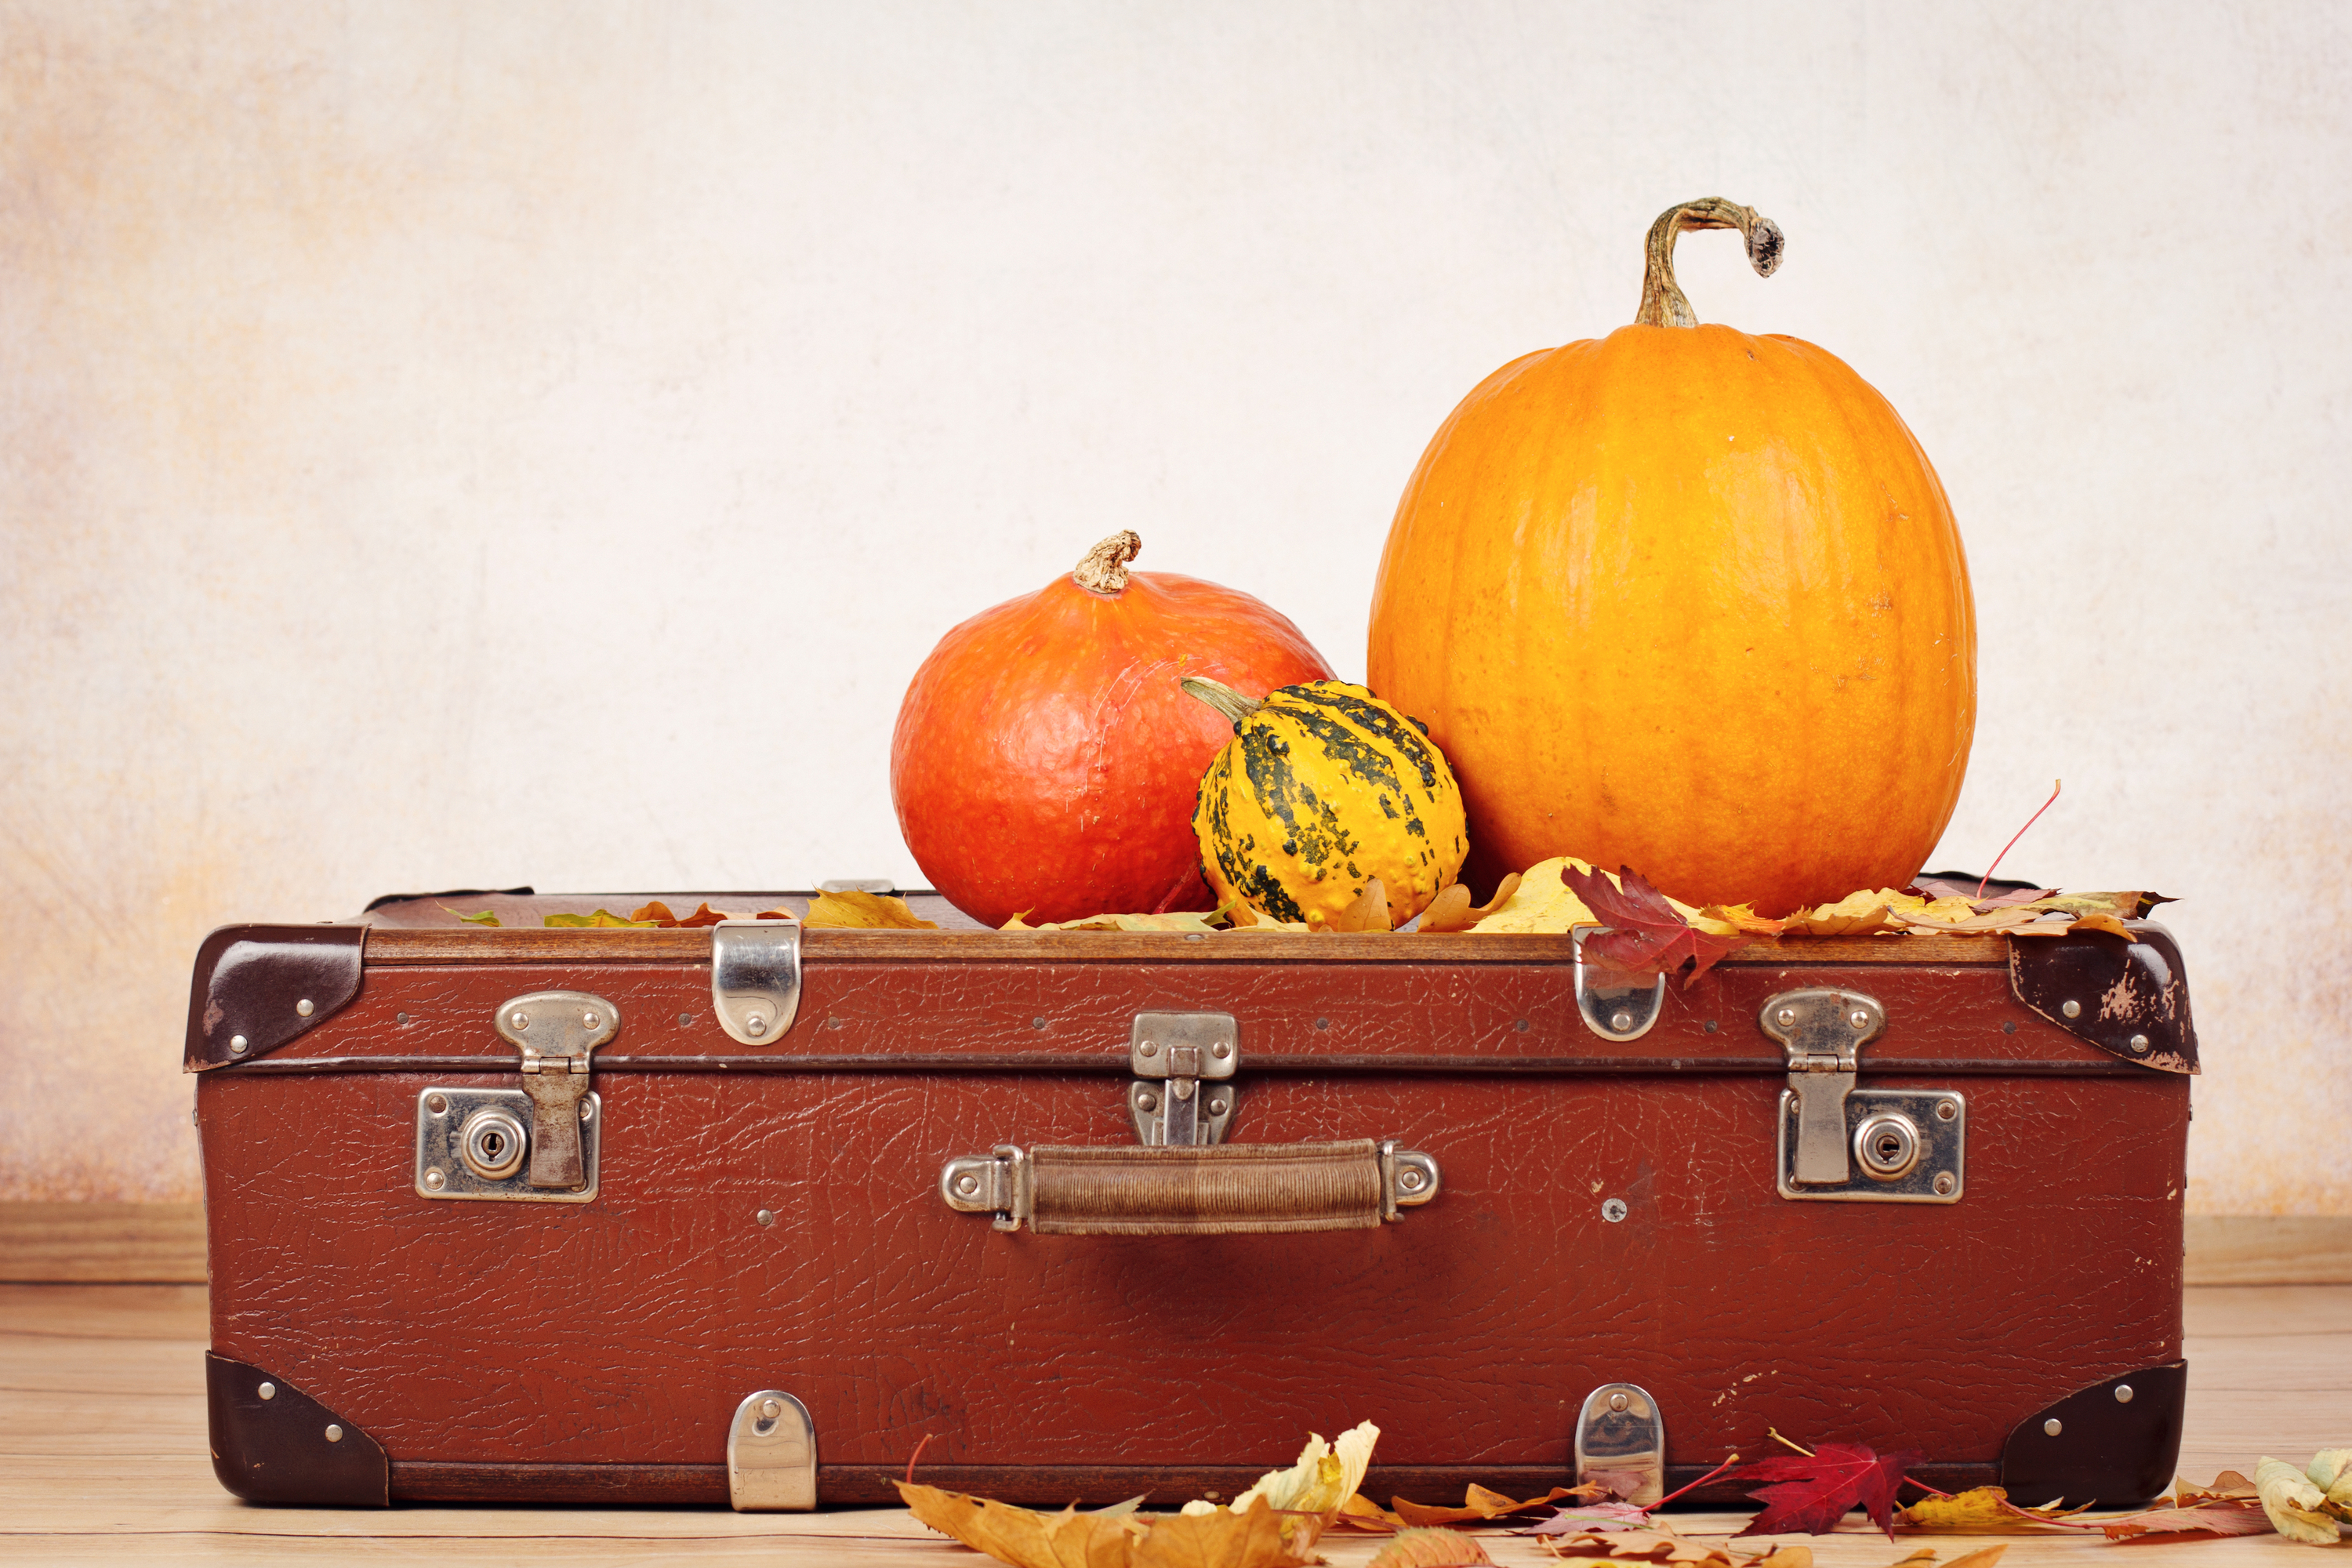 The holidays can be a stressful time for traveling. These Thanksgiving travel tips will help you with the stress of traveling.